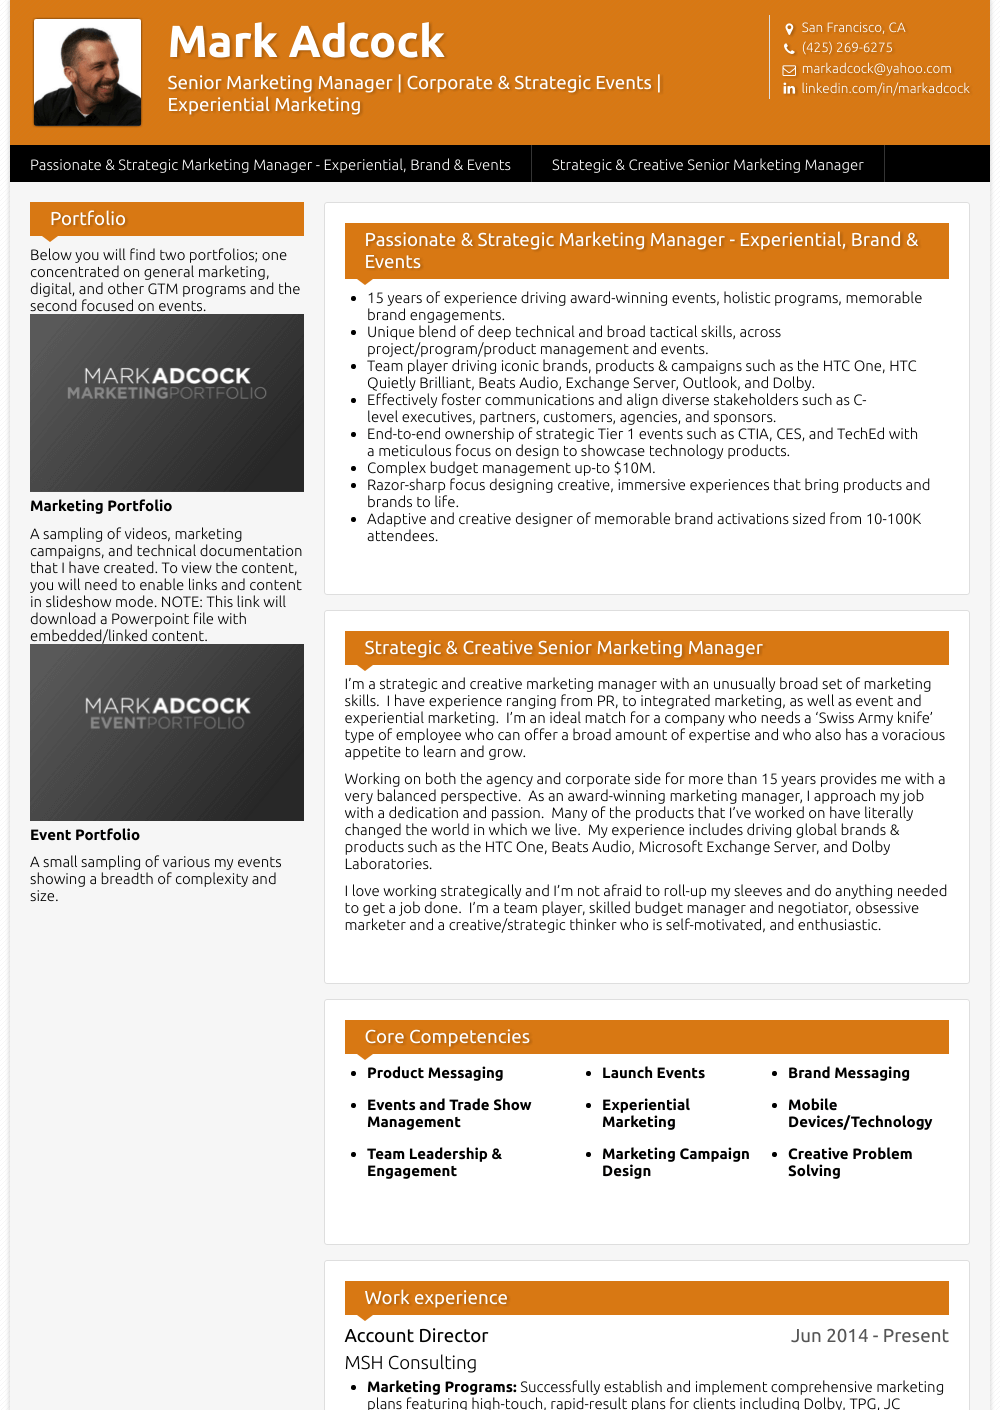 Account Director Resume Sample